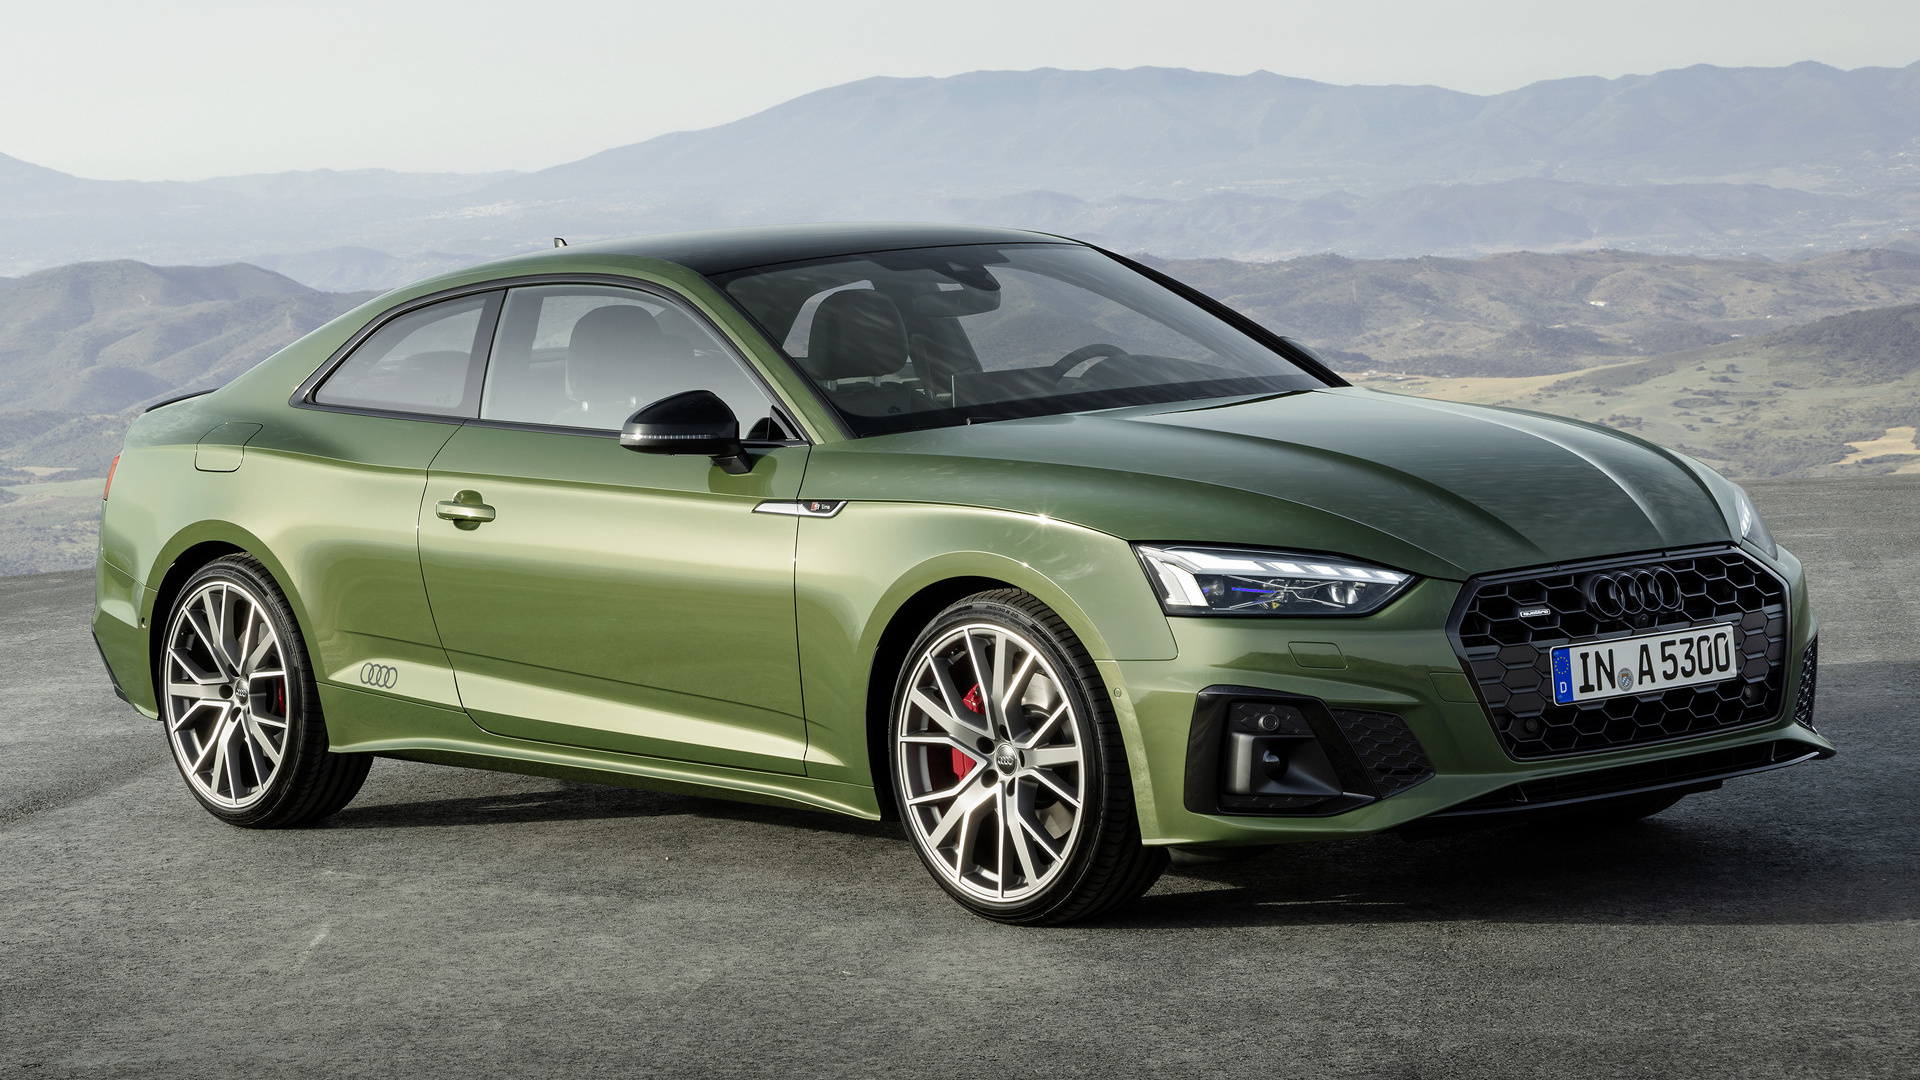 Audi A5 Coupe >> 2020 Audi A5 Coupe Edition One - Wallpapers and HD Images ...